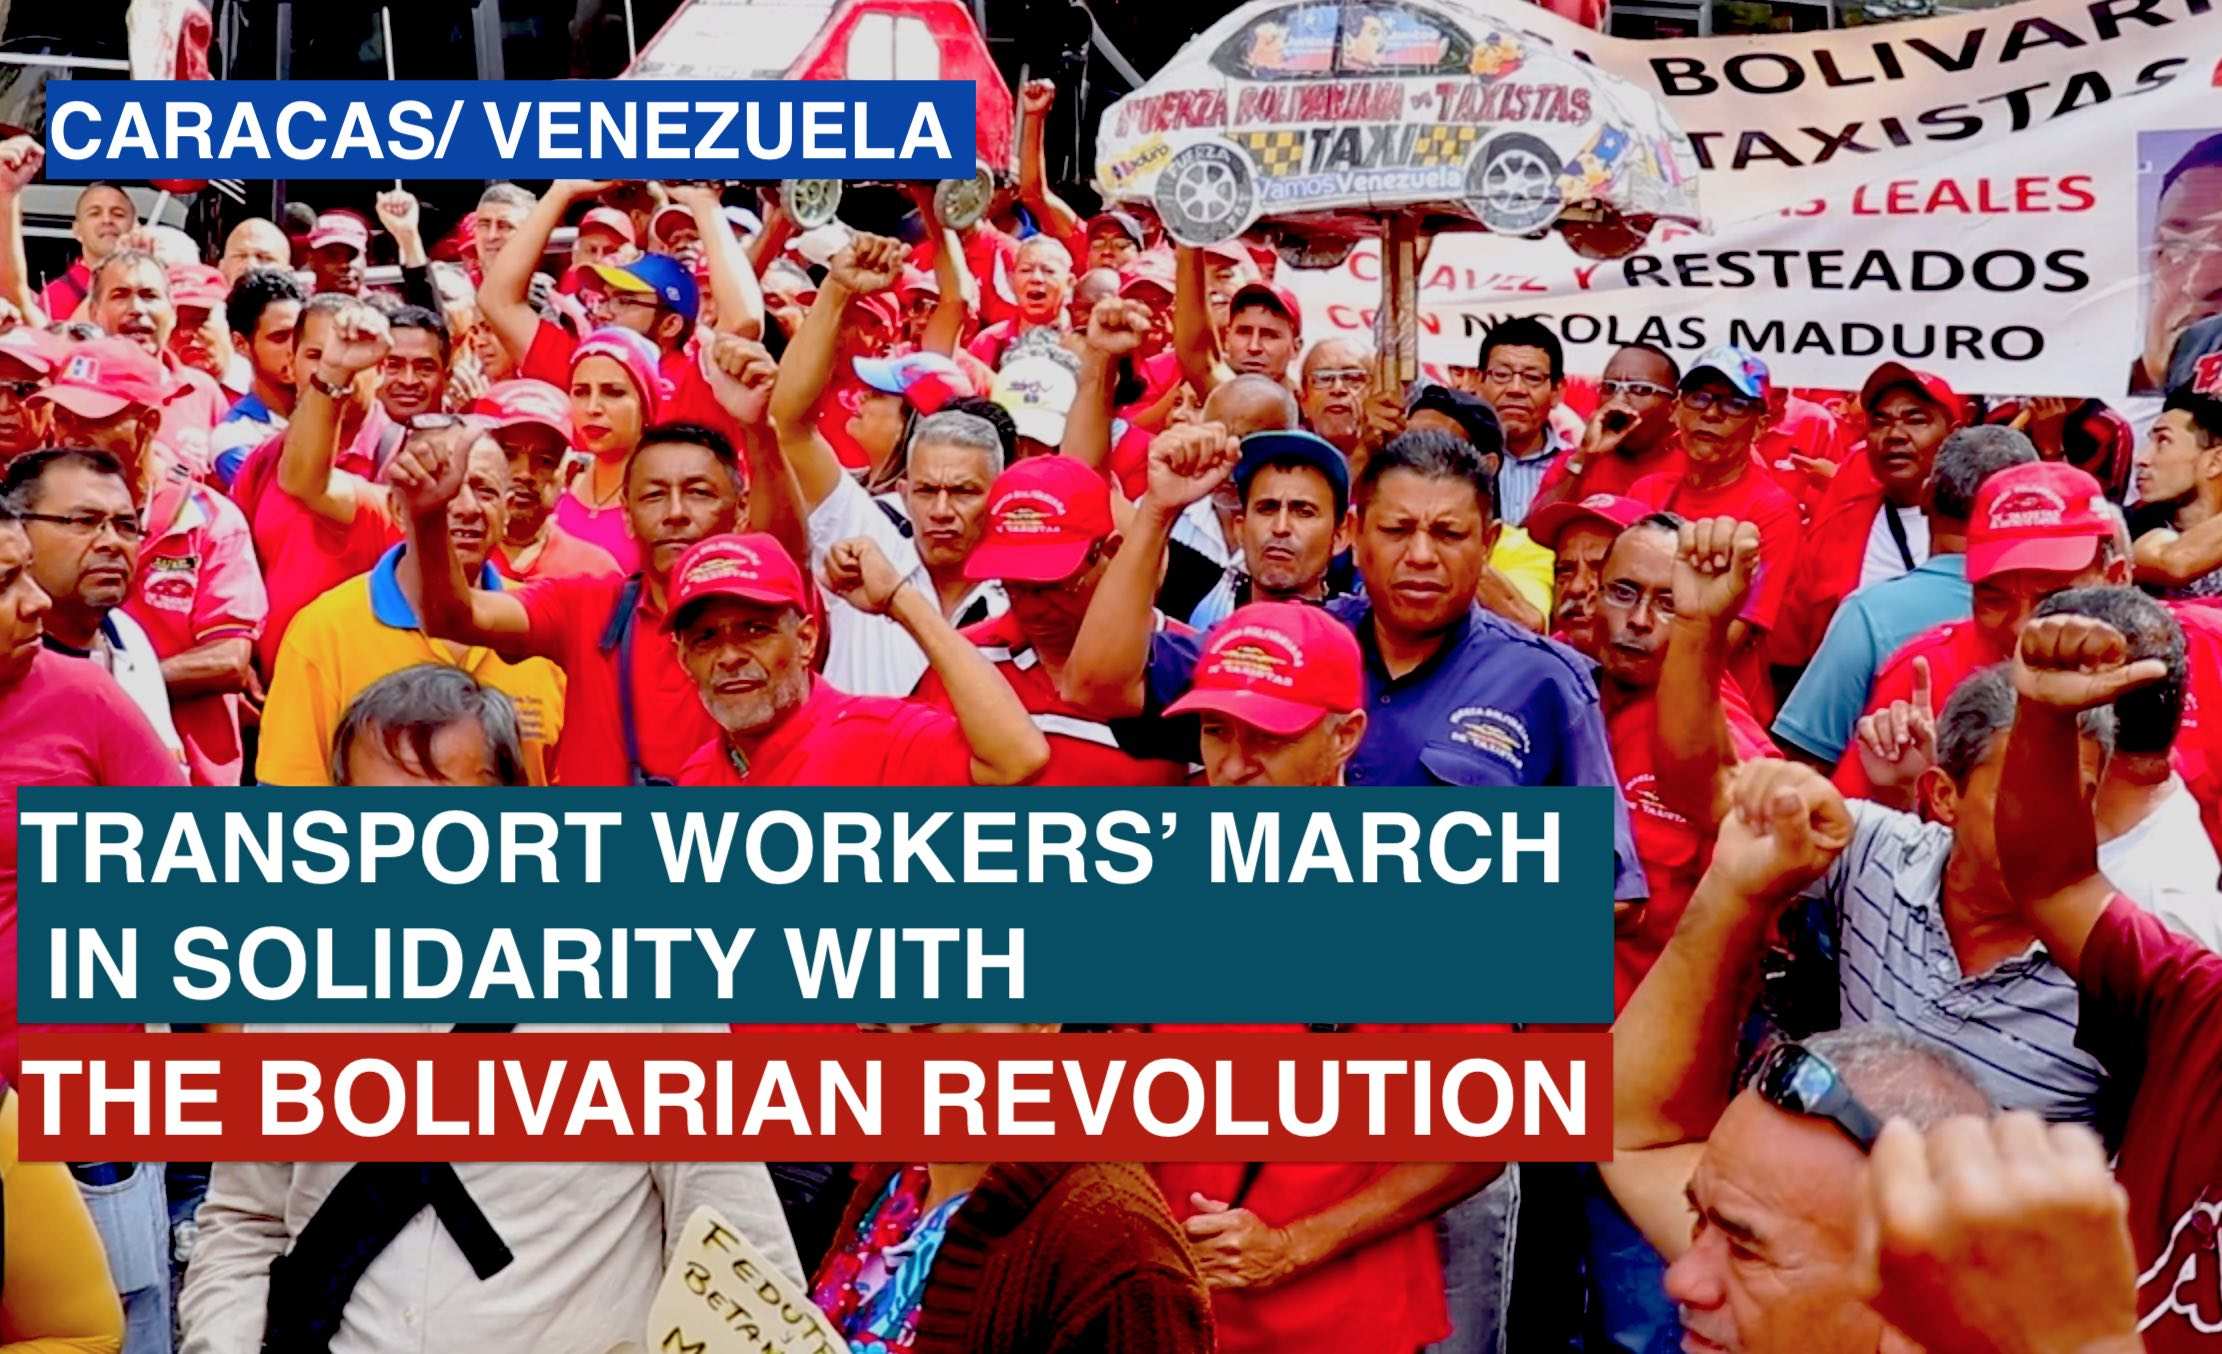 Transport worker's march in Caracas